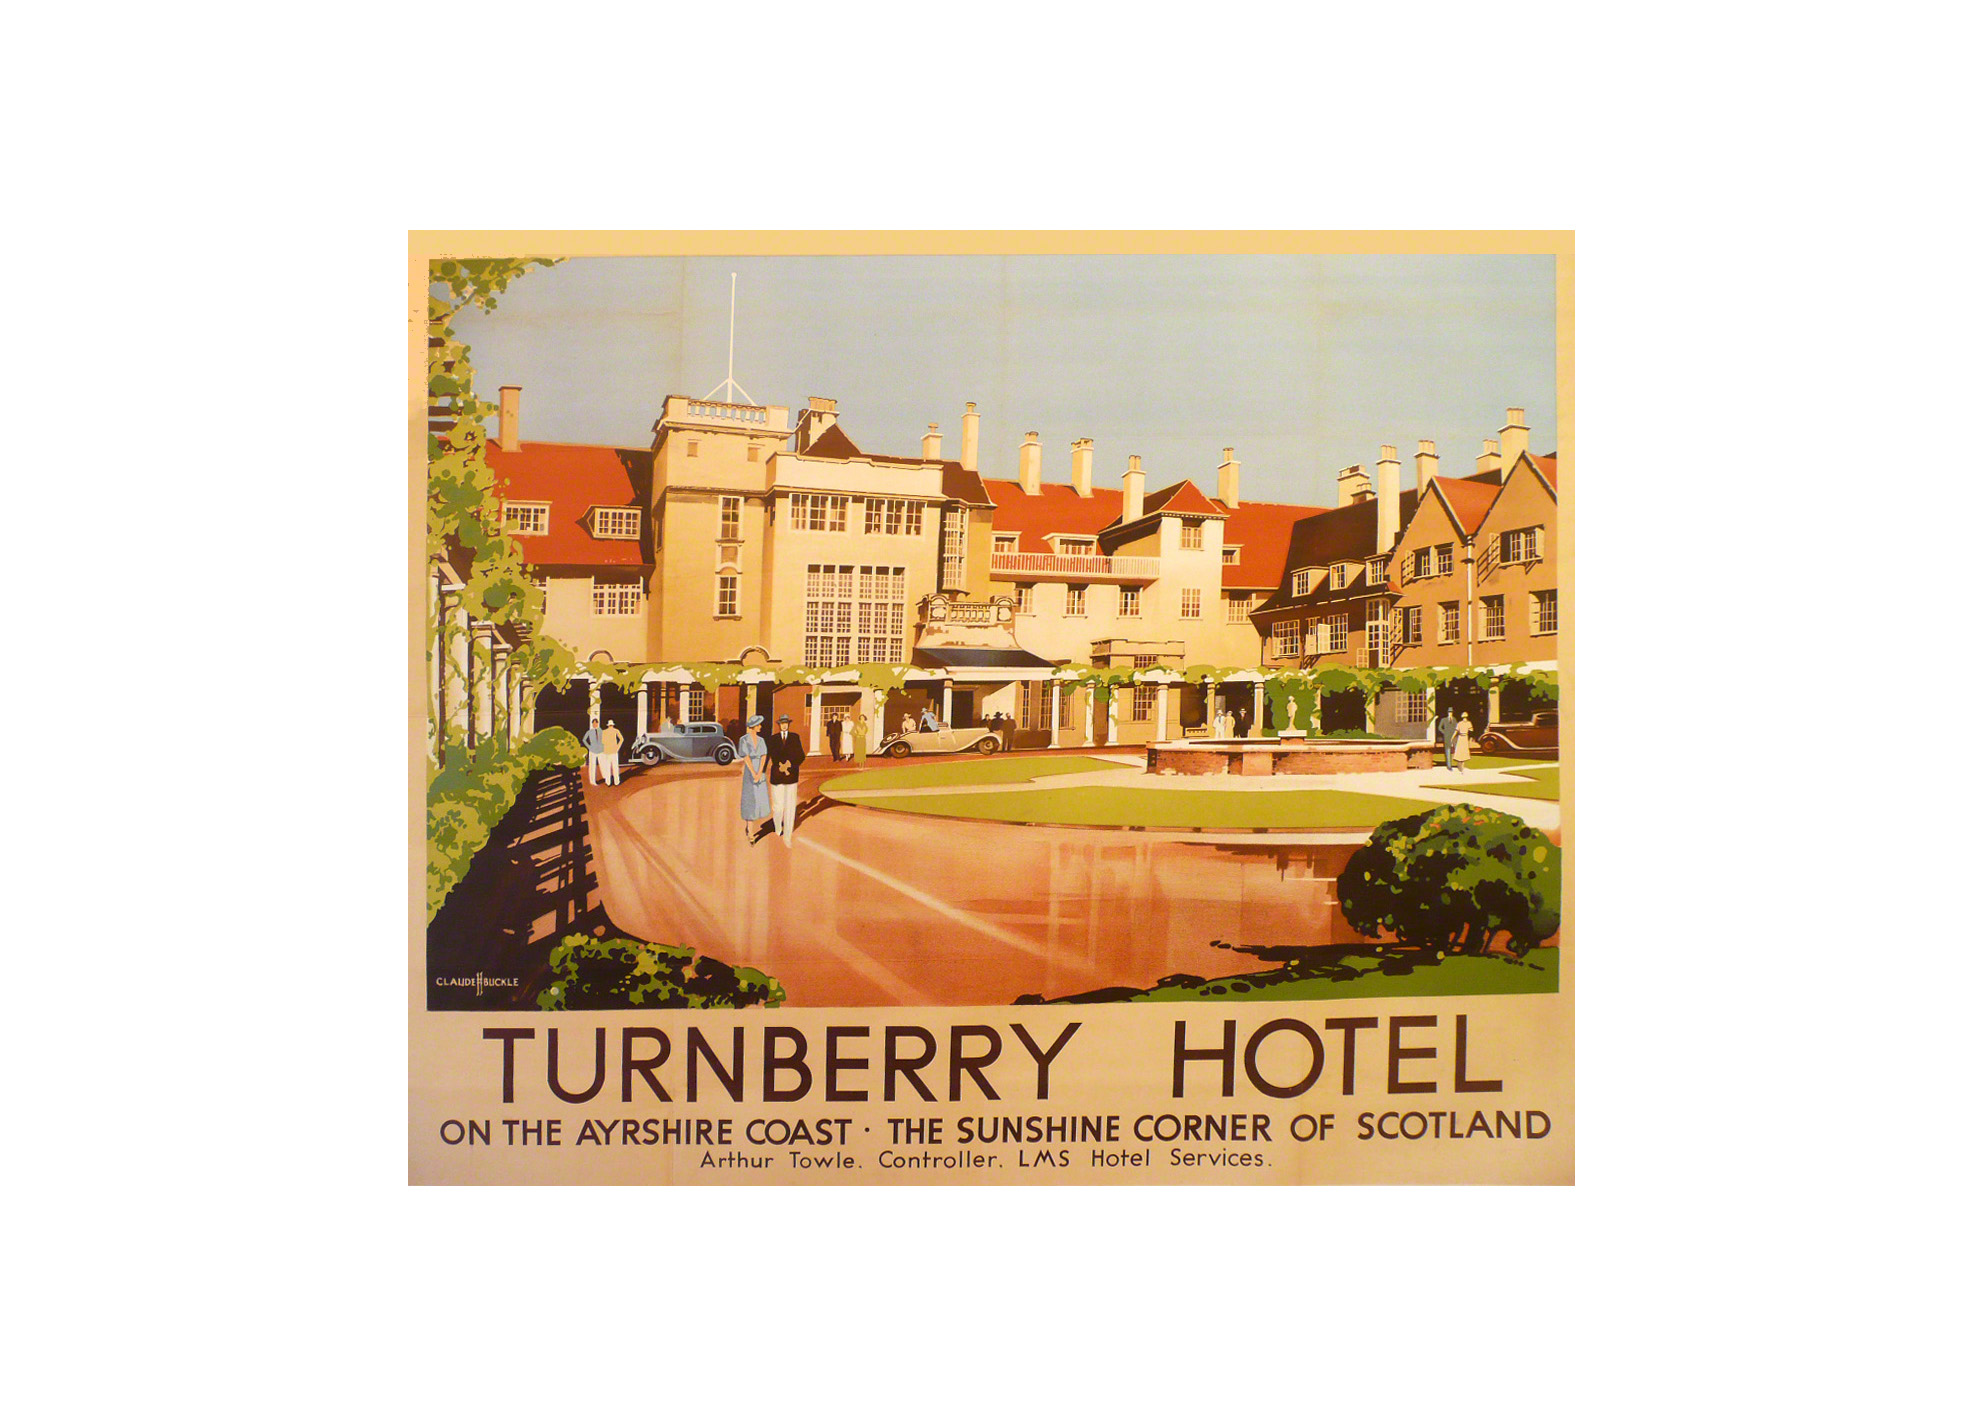 Turnberry Hotel on the Ayrshire coast a railway poster by Claude Buckle